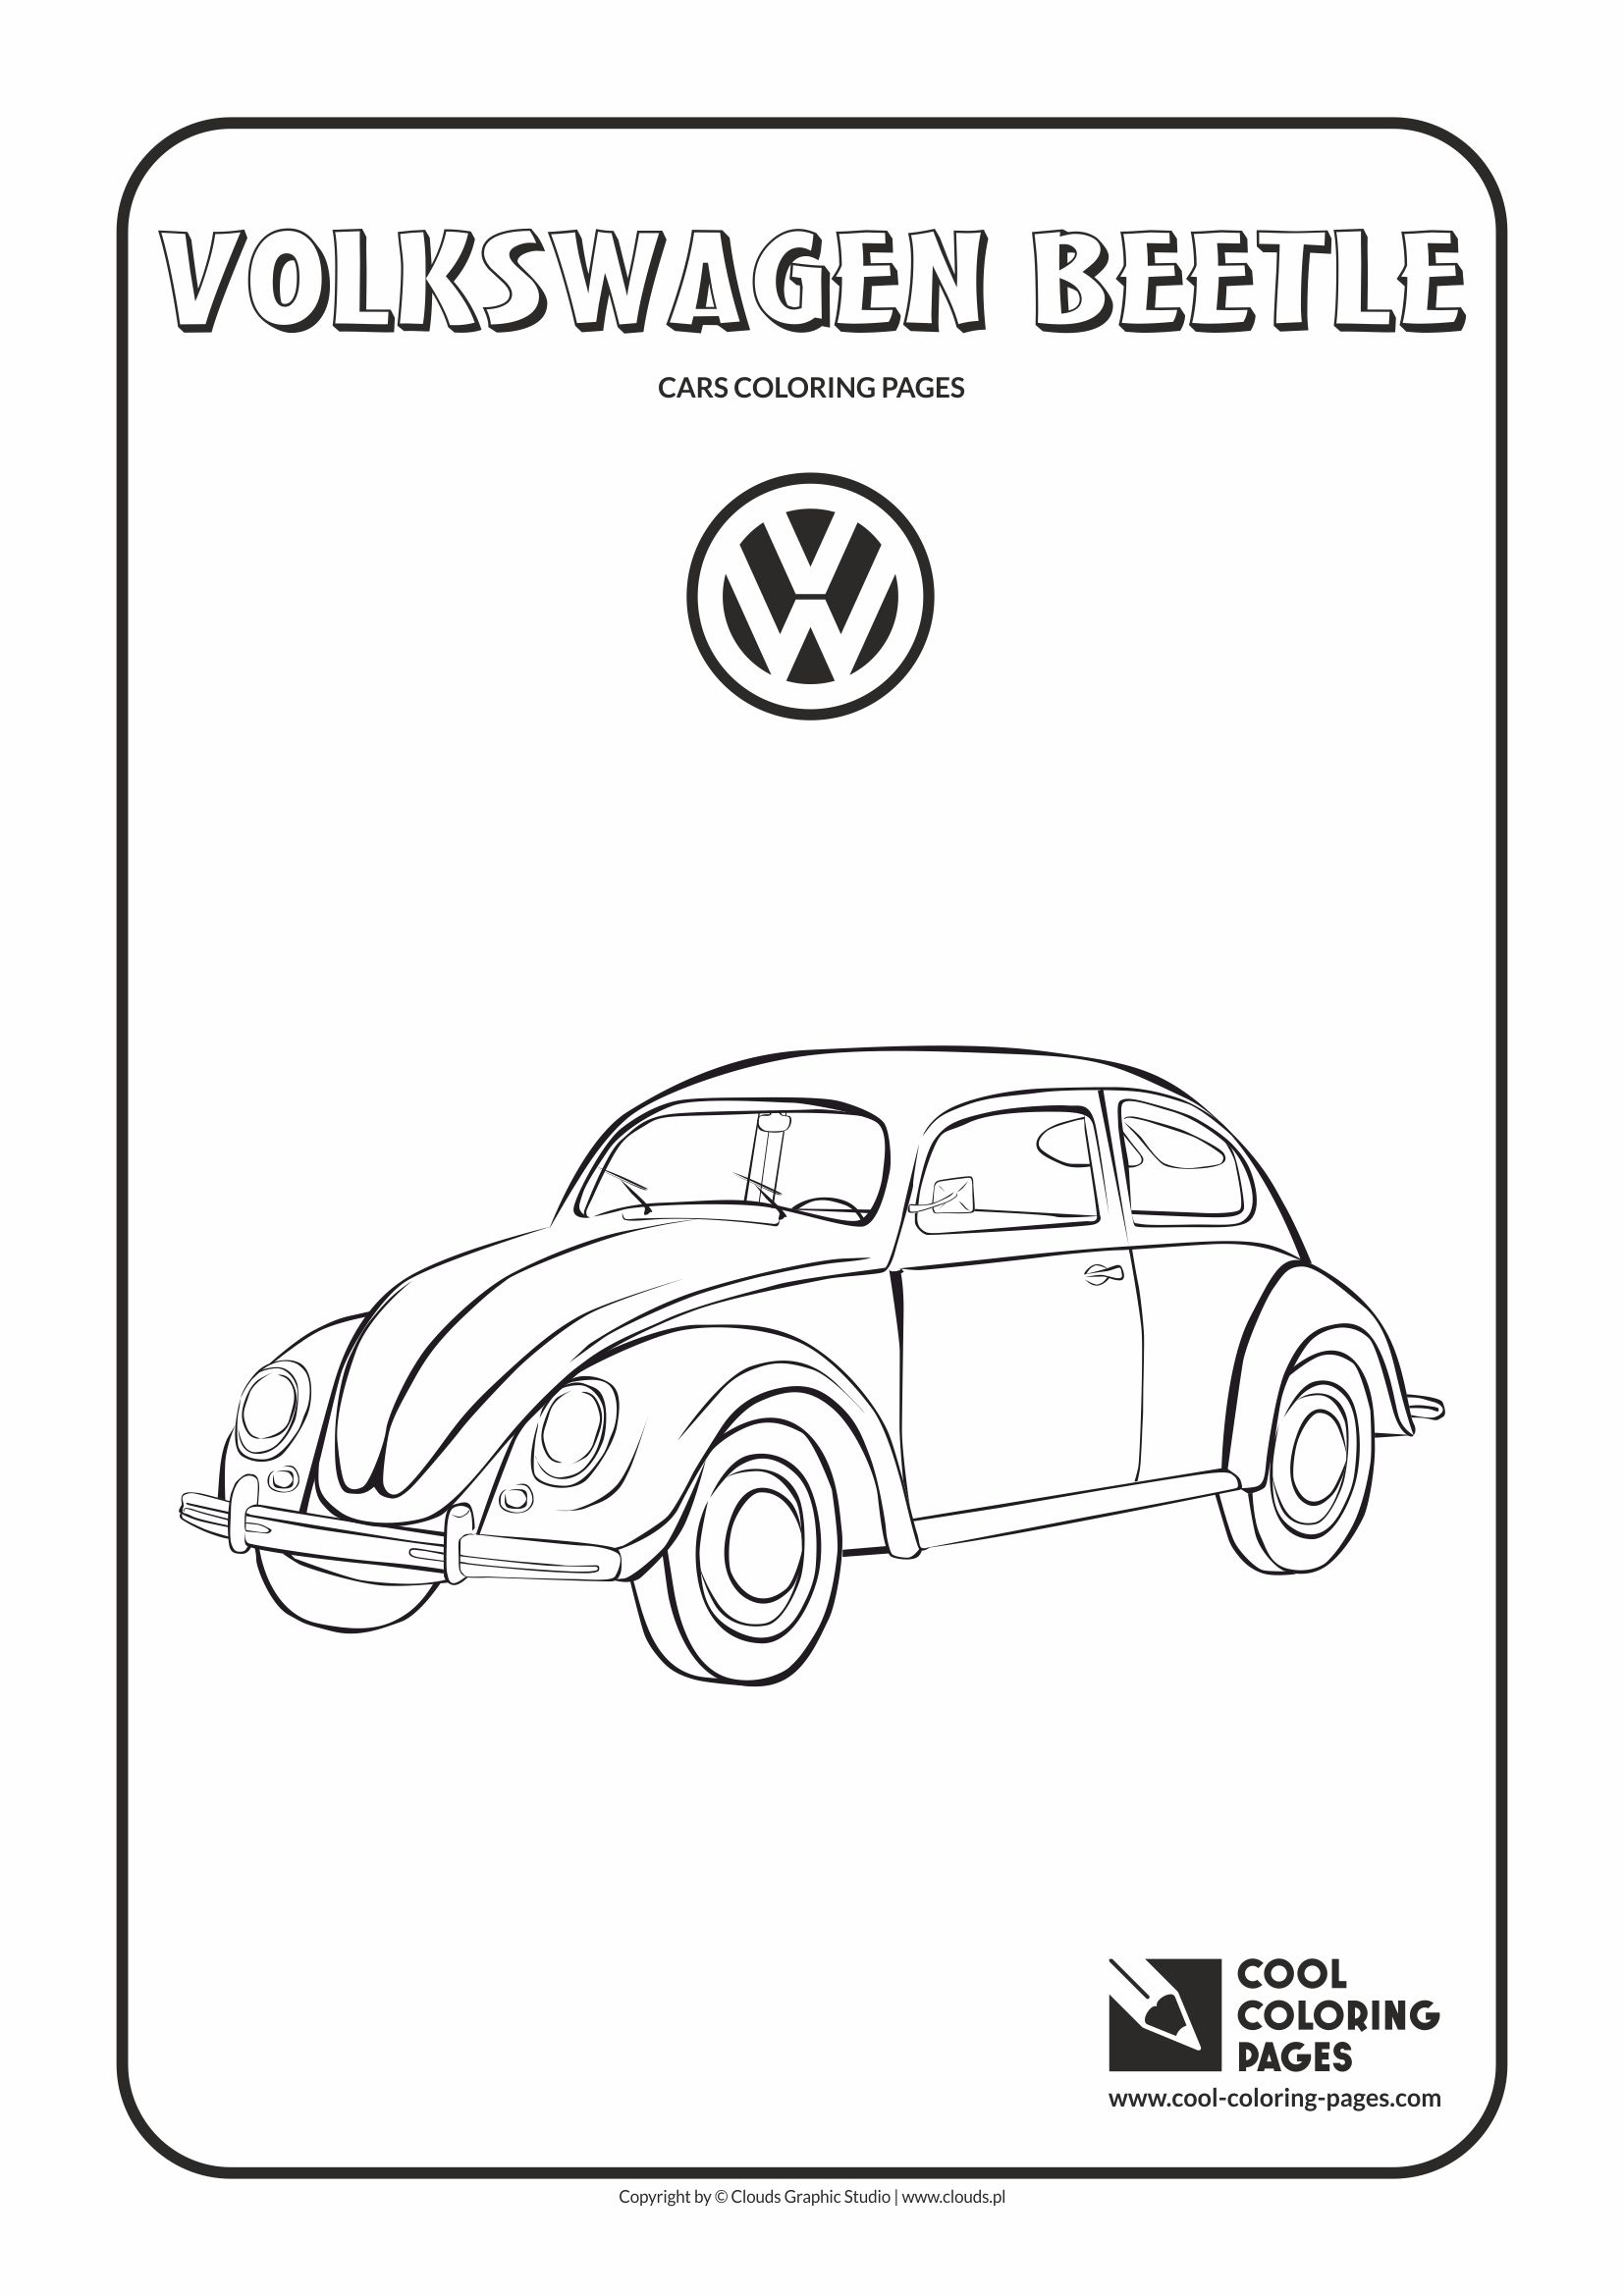 cool coloring pages vehicles volkswagen beetle coloring page with volkswagen beetle